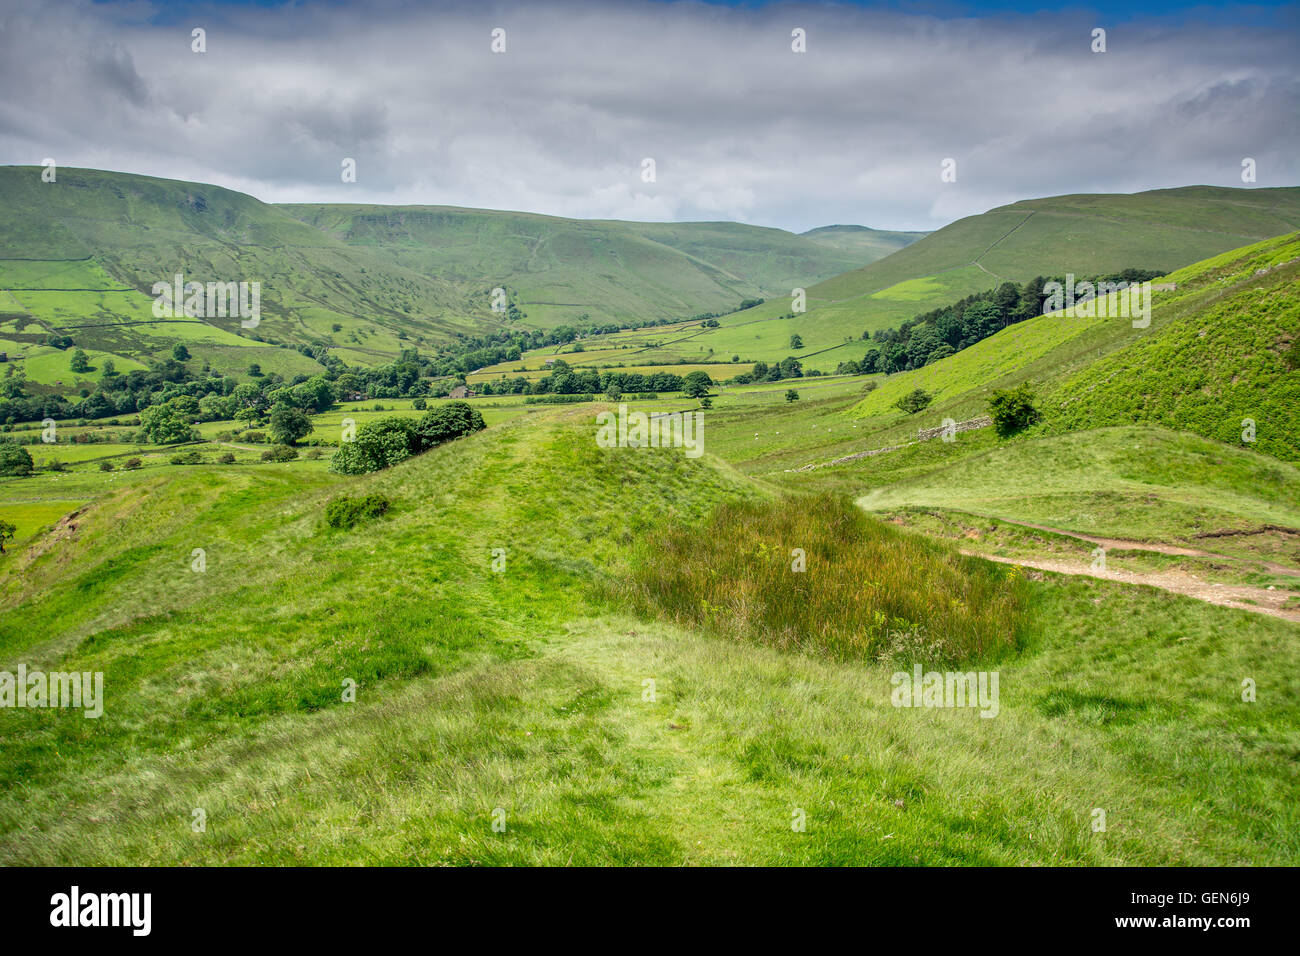 National Park ,Edale Hope Valley England - Stock Image